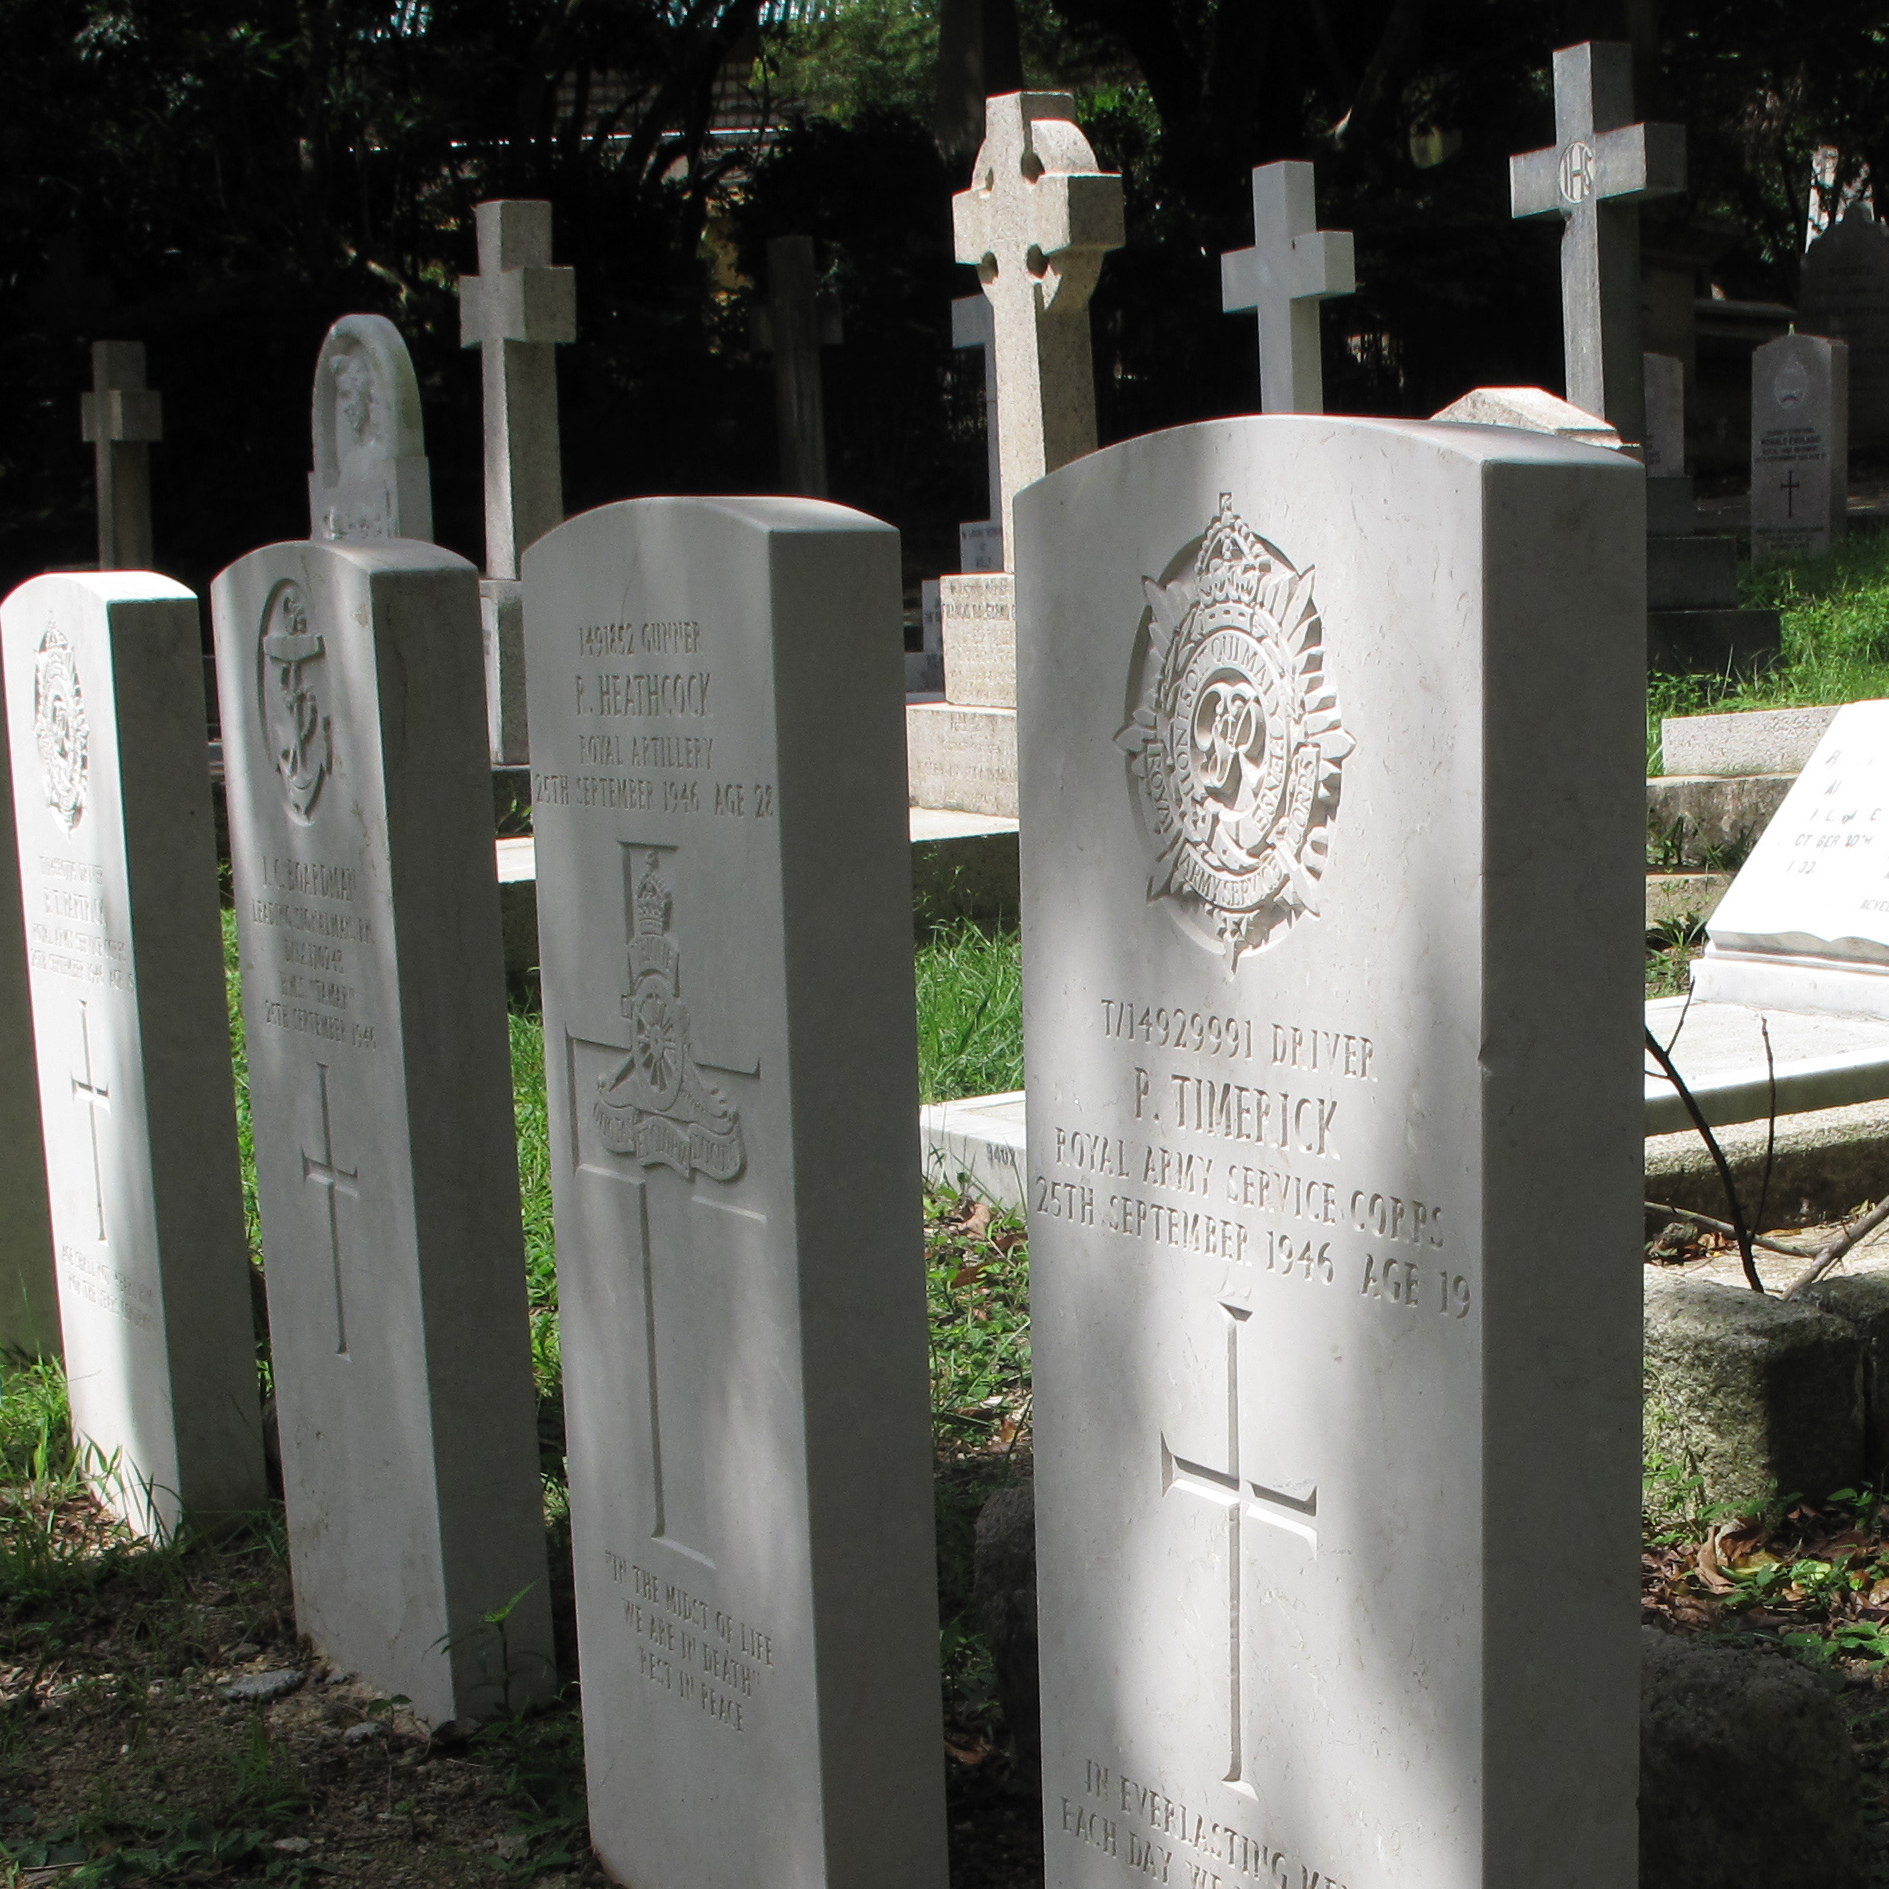 A series of identical graves mark the resting spots for 11 British soldiers, including Col. Cyril Wild. His plane crashed in 1946 en route to Tokyo,where he was heading to give evidence against Japanese army officers at the Tokyo War Crimes Tribunal. He'd been the only fluent Japanese speaker in the British army, and he helped negotiate the Japanese surrender in Singapore.